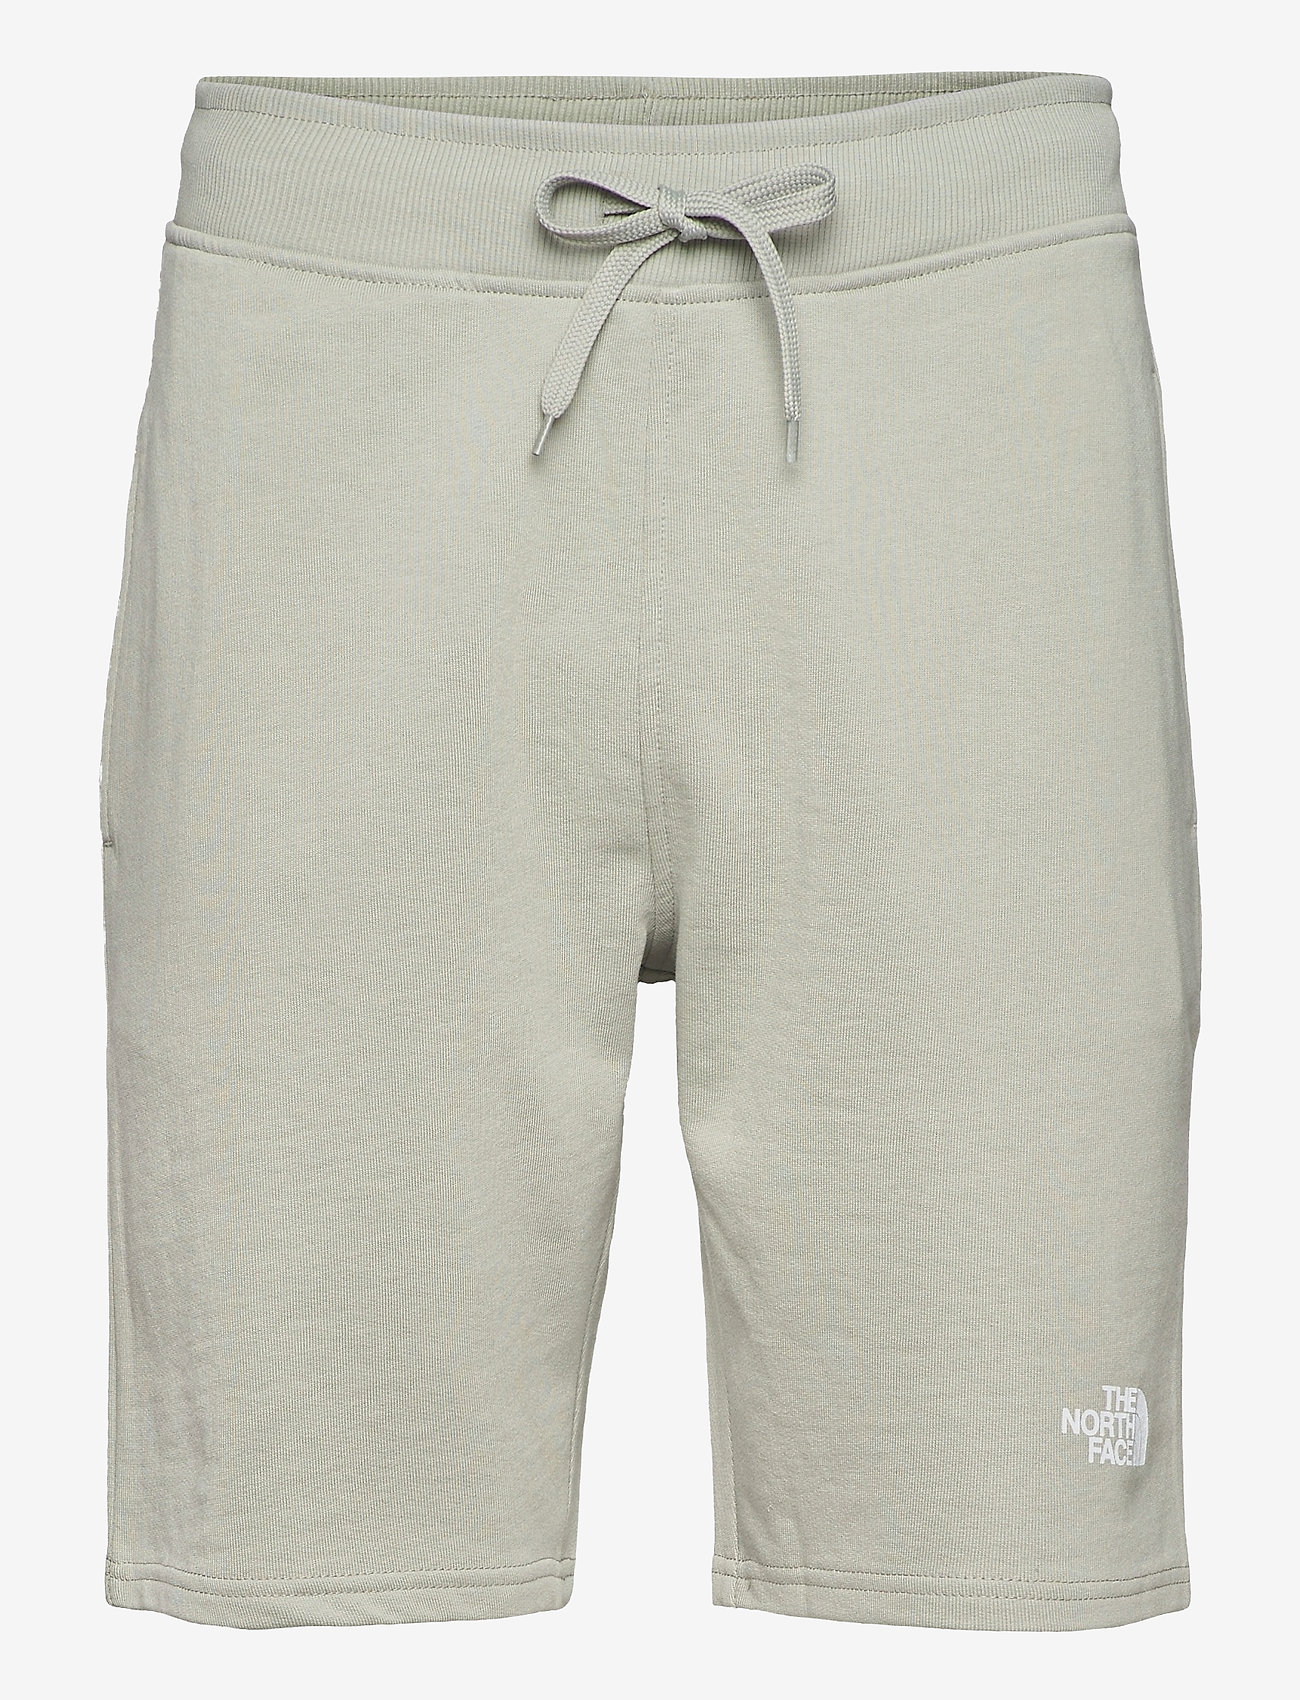 The North Face - M STAND SHORT LIGHT - casual shorts - wrought iron - 0